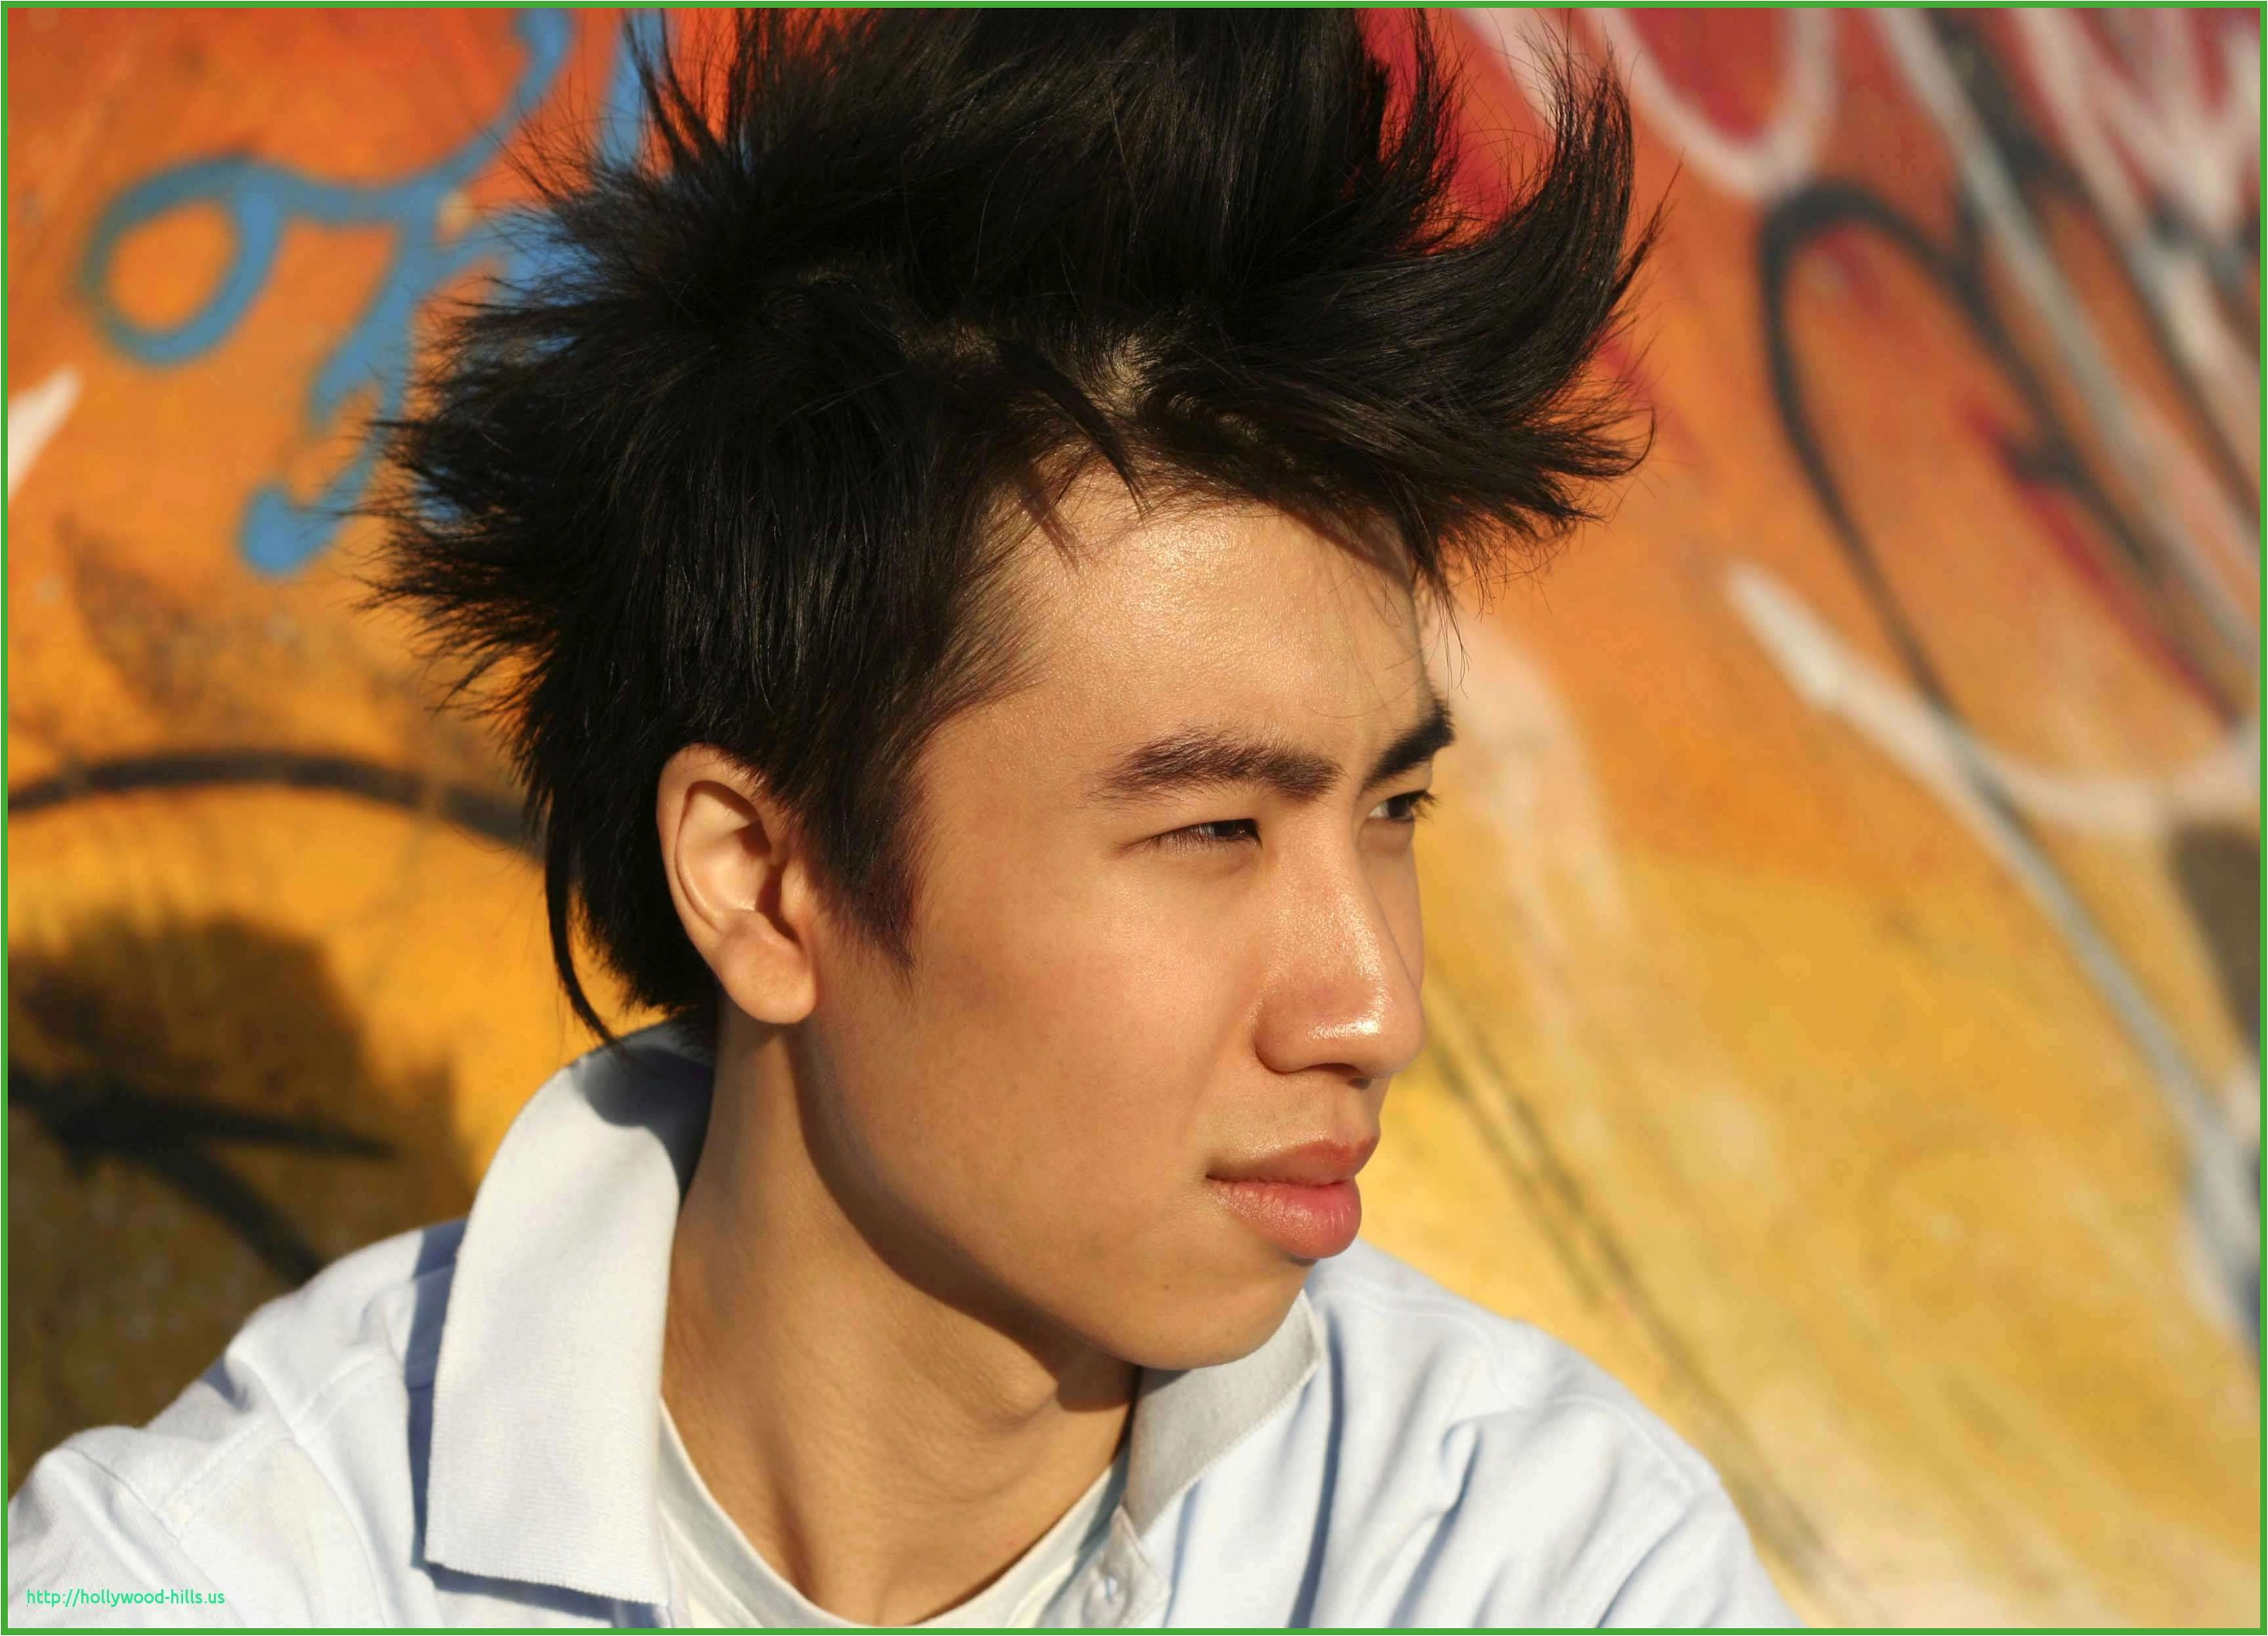 Male Hairstyles Unique Gym Hairstyles Male New Hairstyles for Men Luxury Haircuts 0d